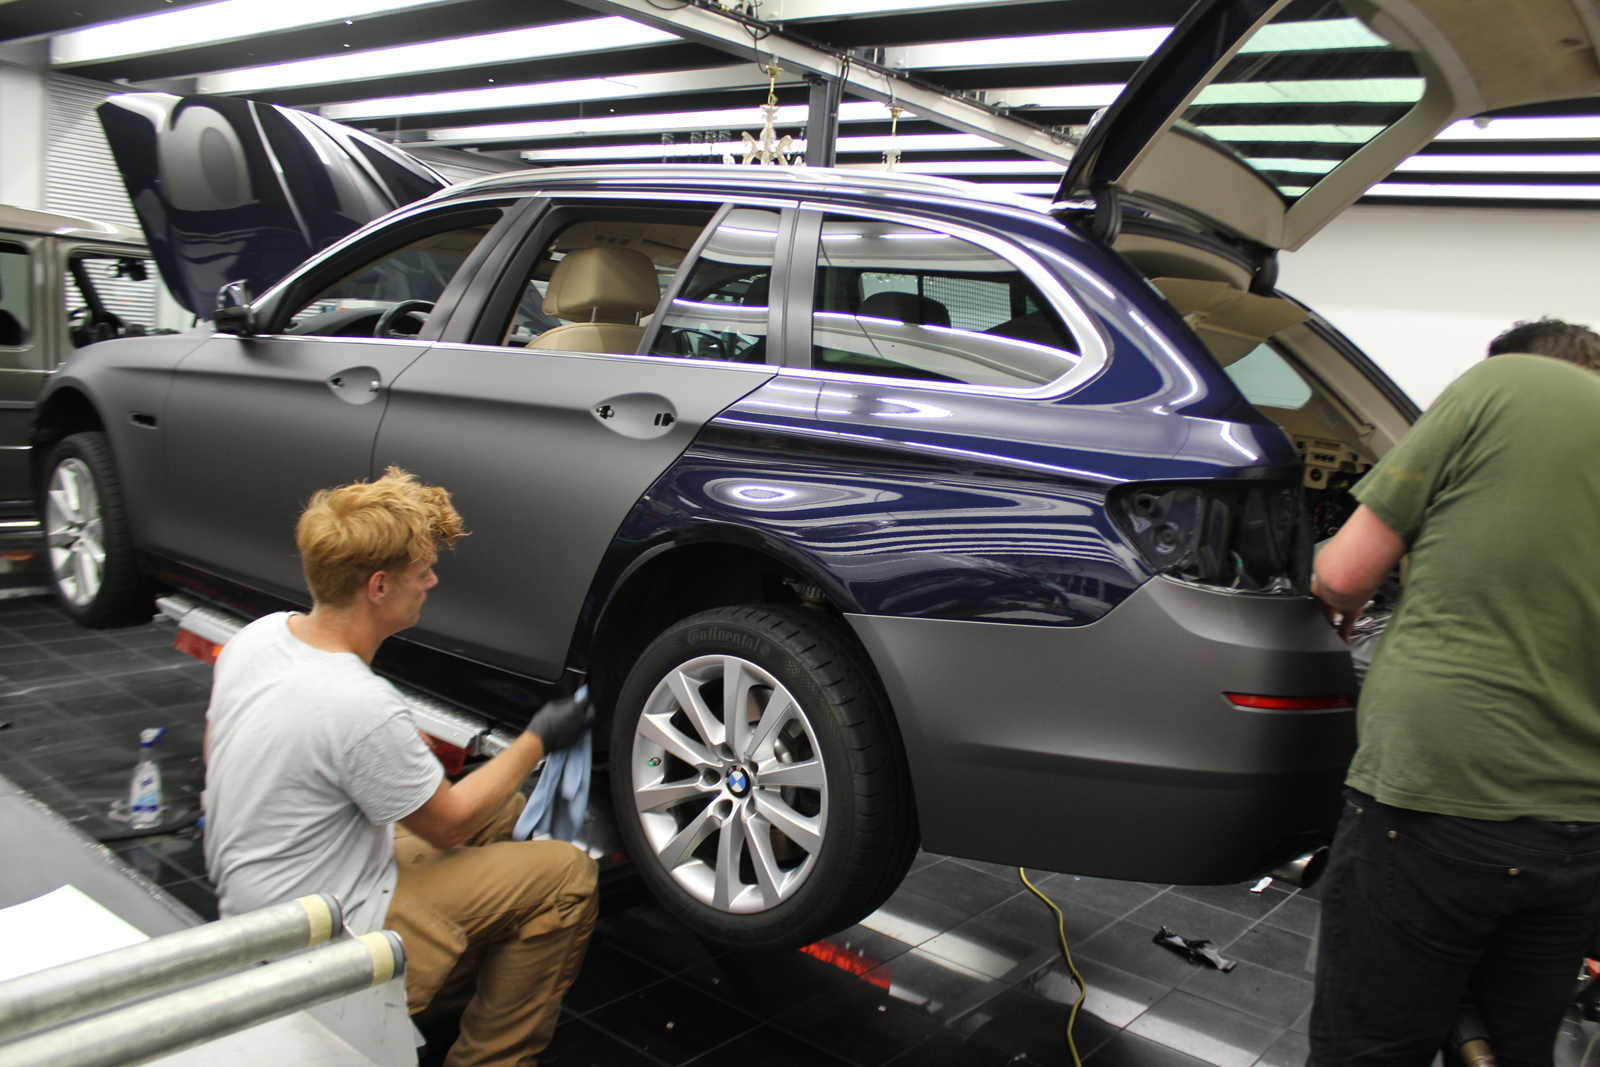 Auto Folierung Car Wrapping BMW 5er Anthrazit Matt Metallic